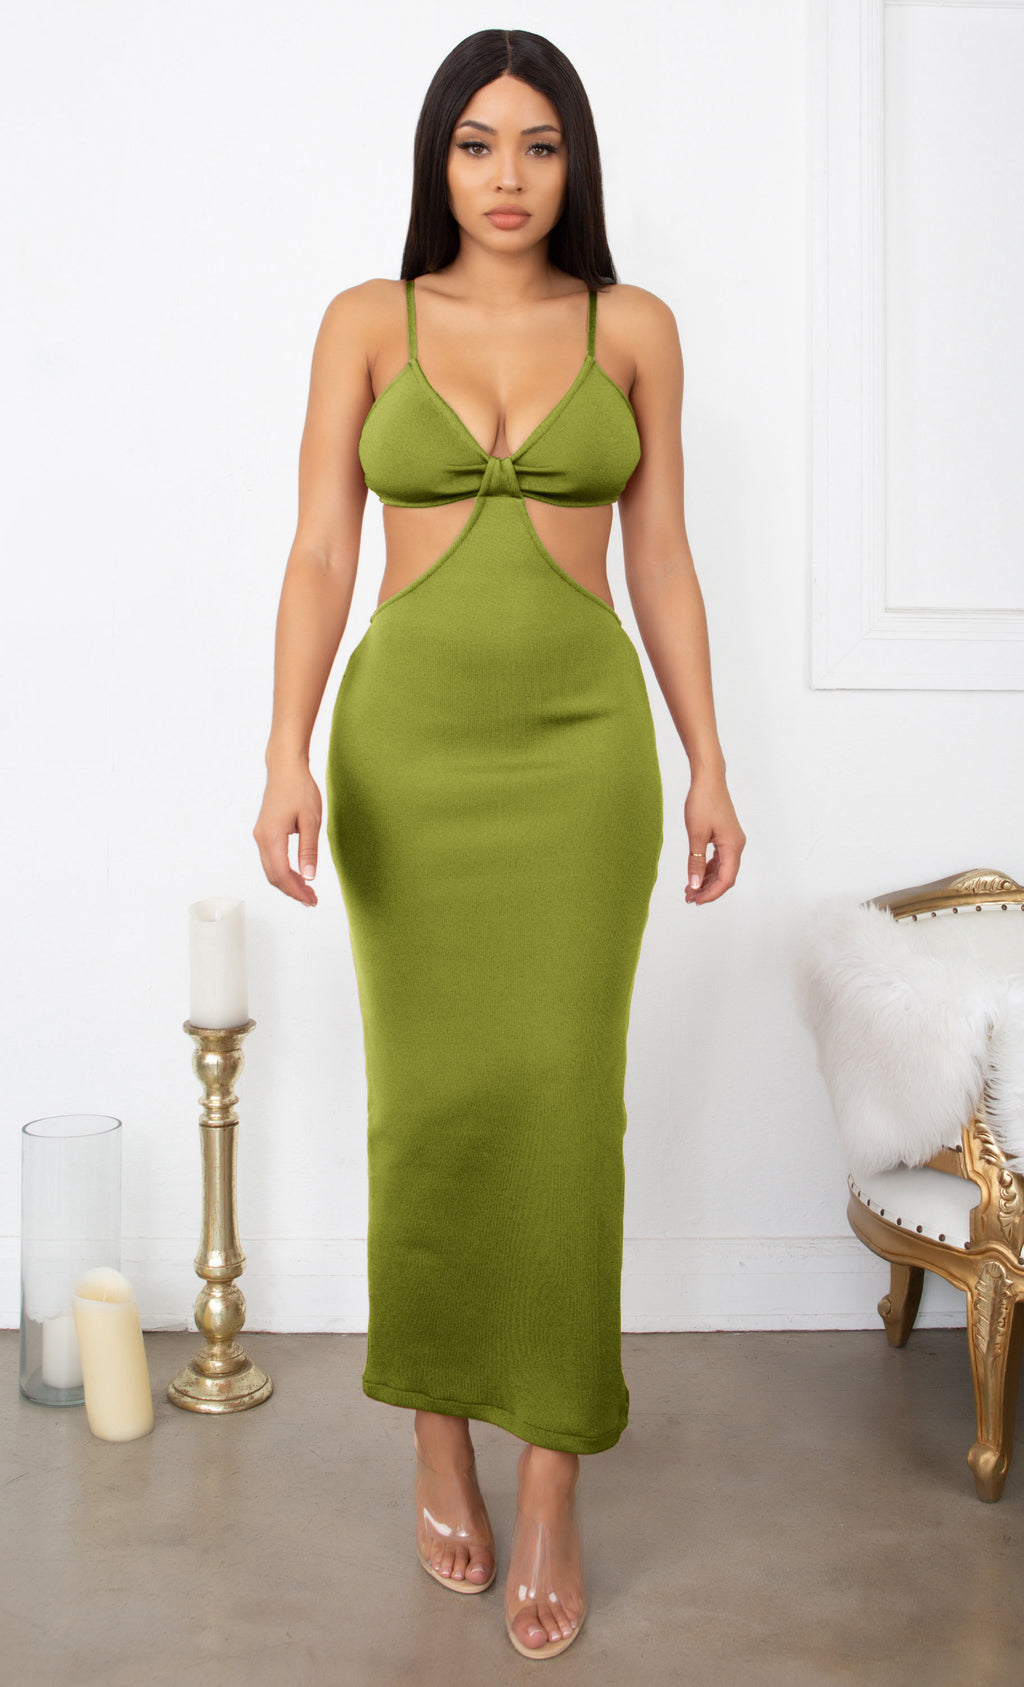 Sultry Nights Green Cut Out Knotted Bandage Spaghetti Strap Sleeveless Maxi Bodycon Dress